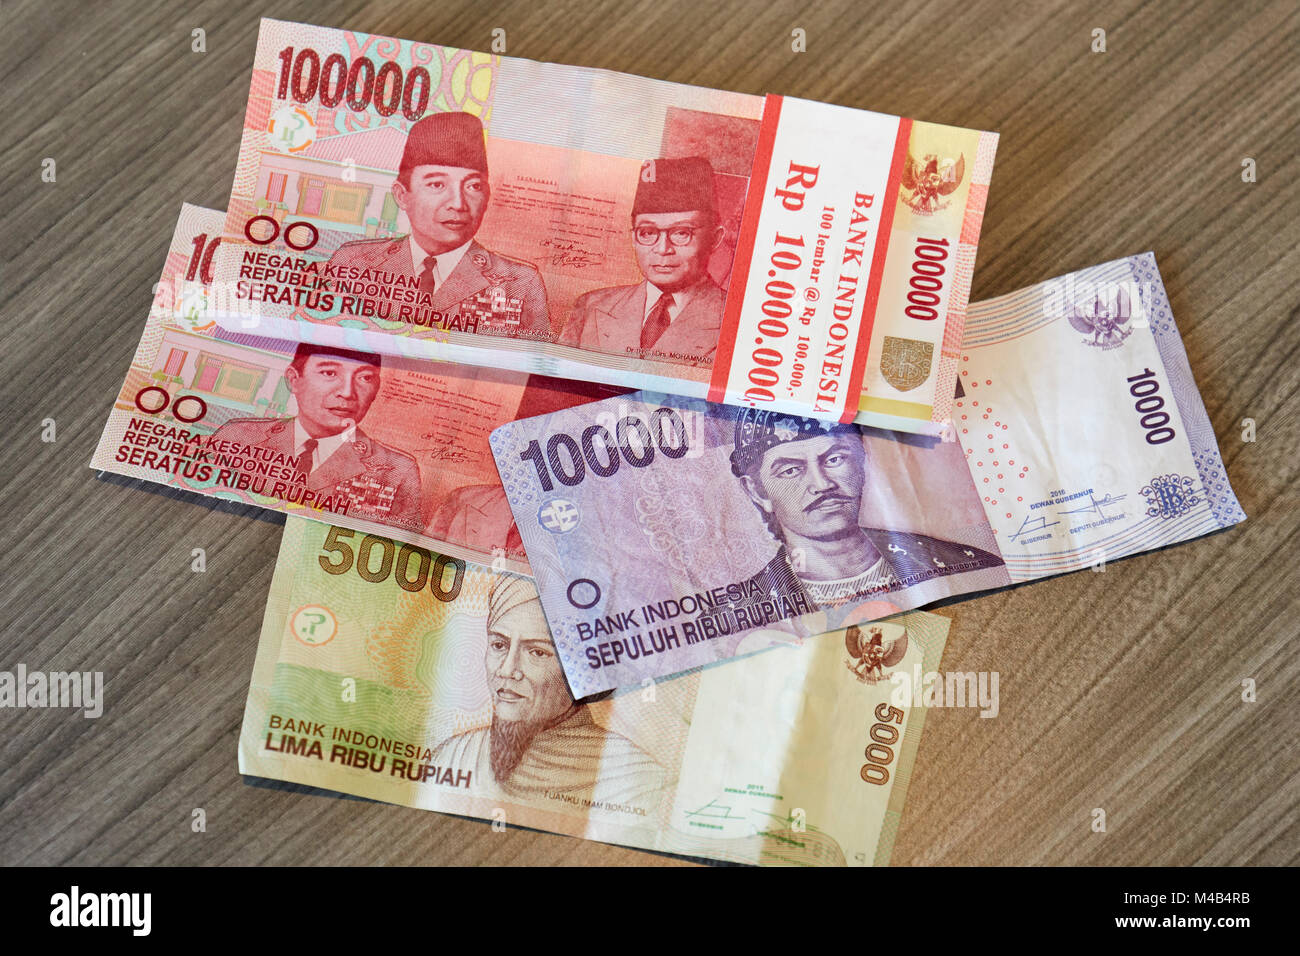 Indonesian paper money with different face values laying on a table. Yogyakarta, Java, Indonesia. - Stock Image